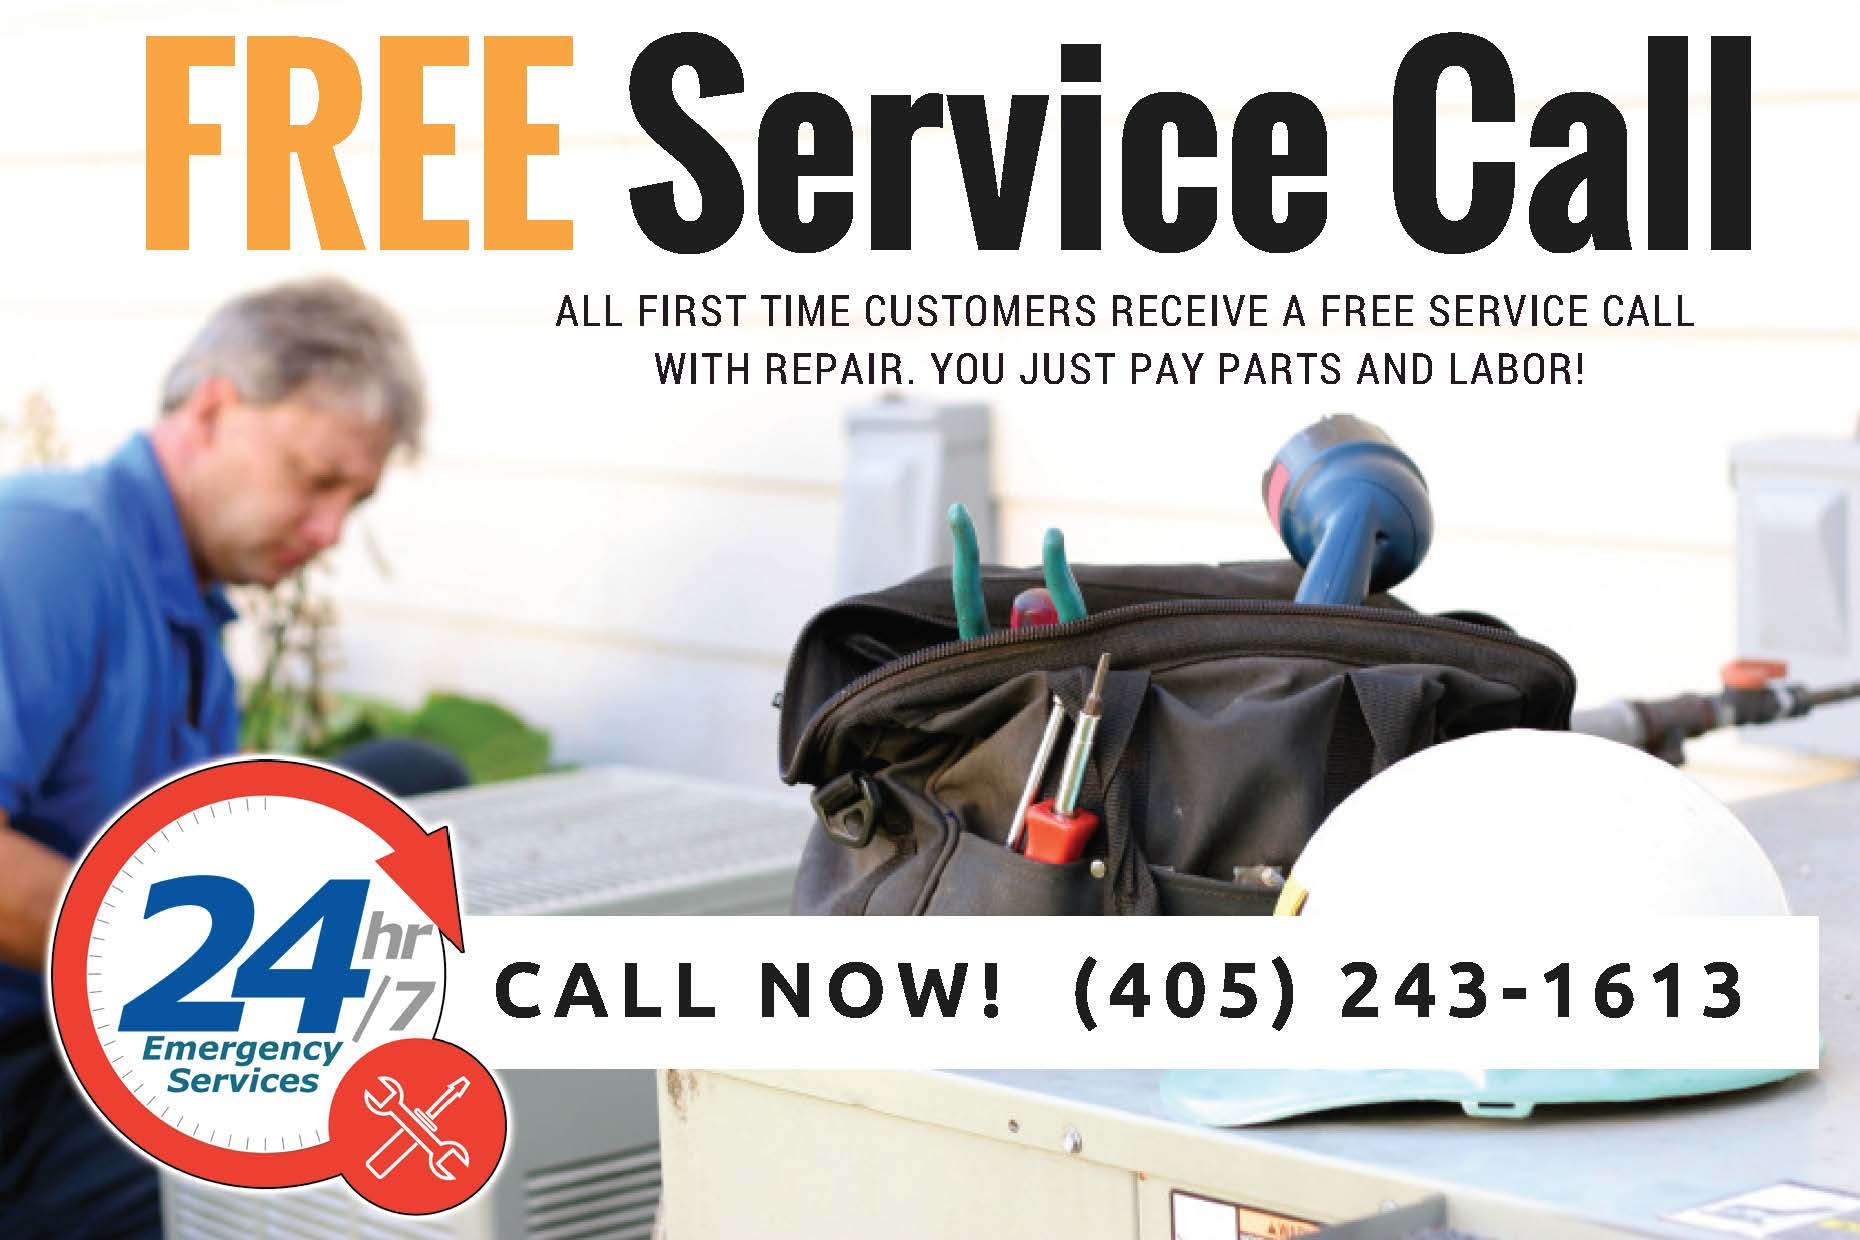 Oklahoma City Free Heater or Furnace Service Call